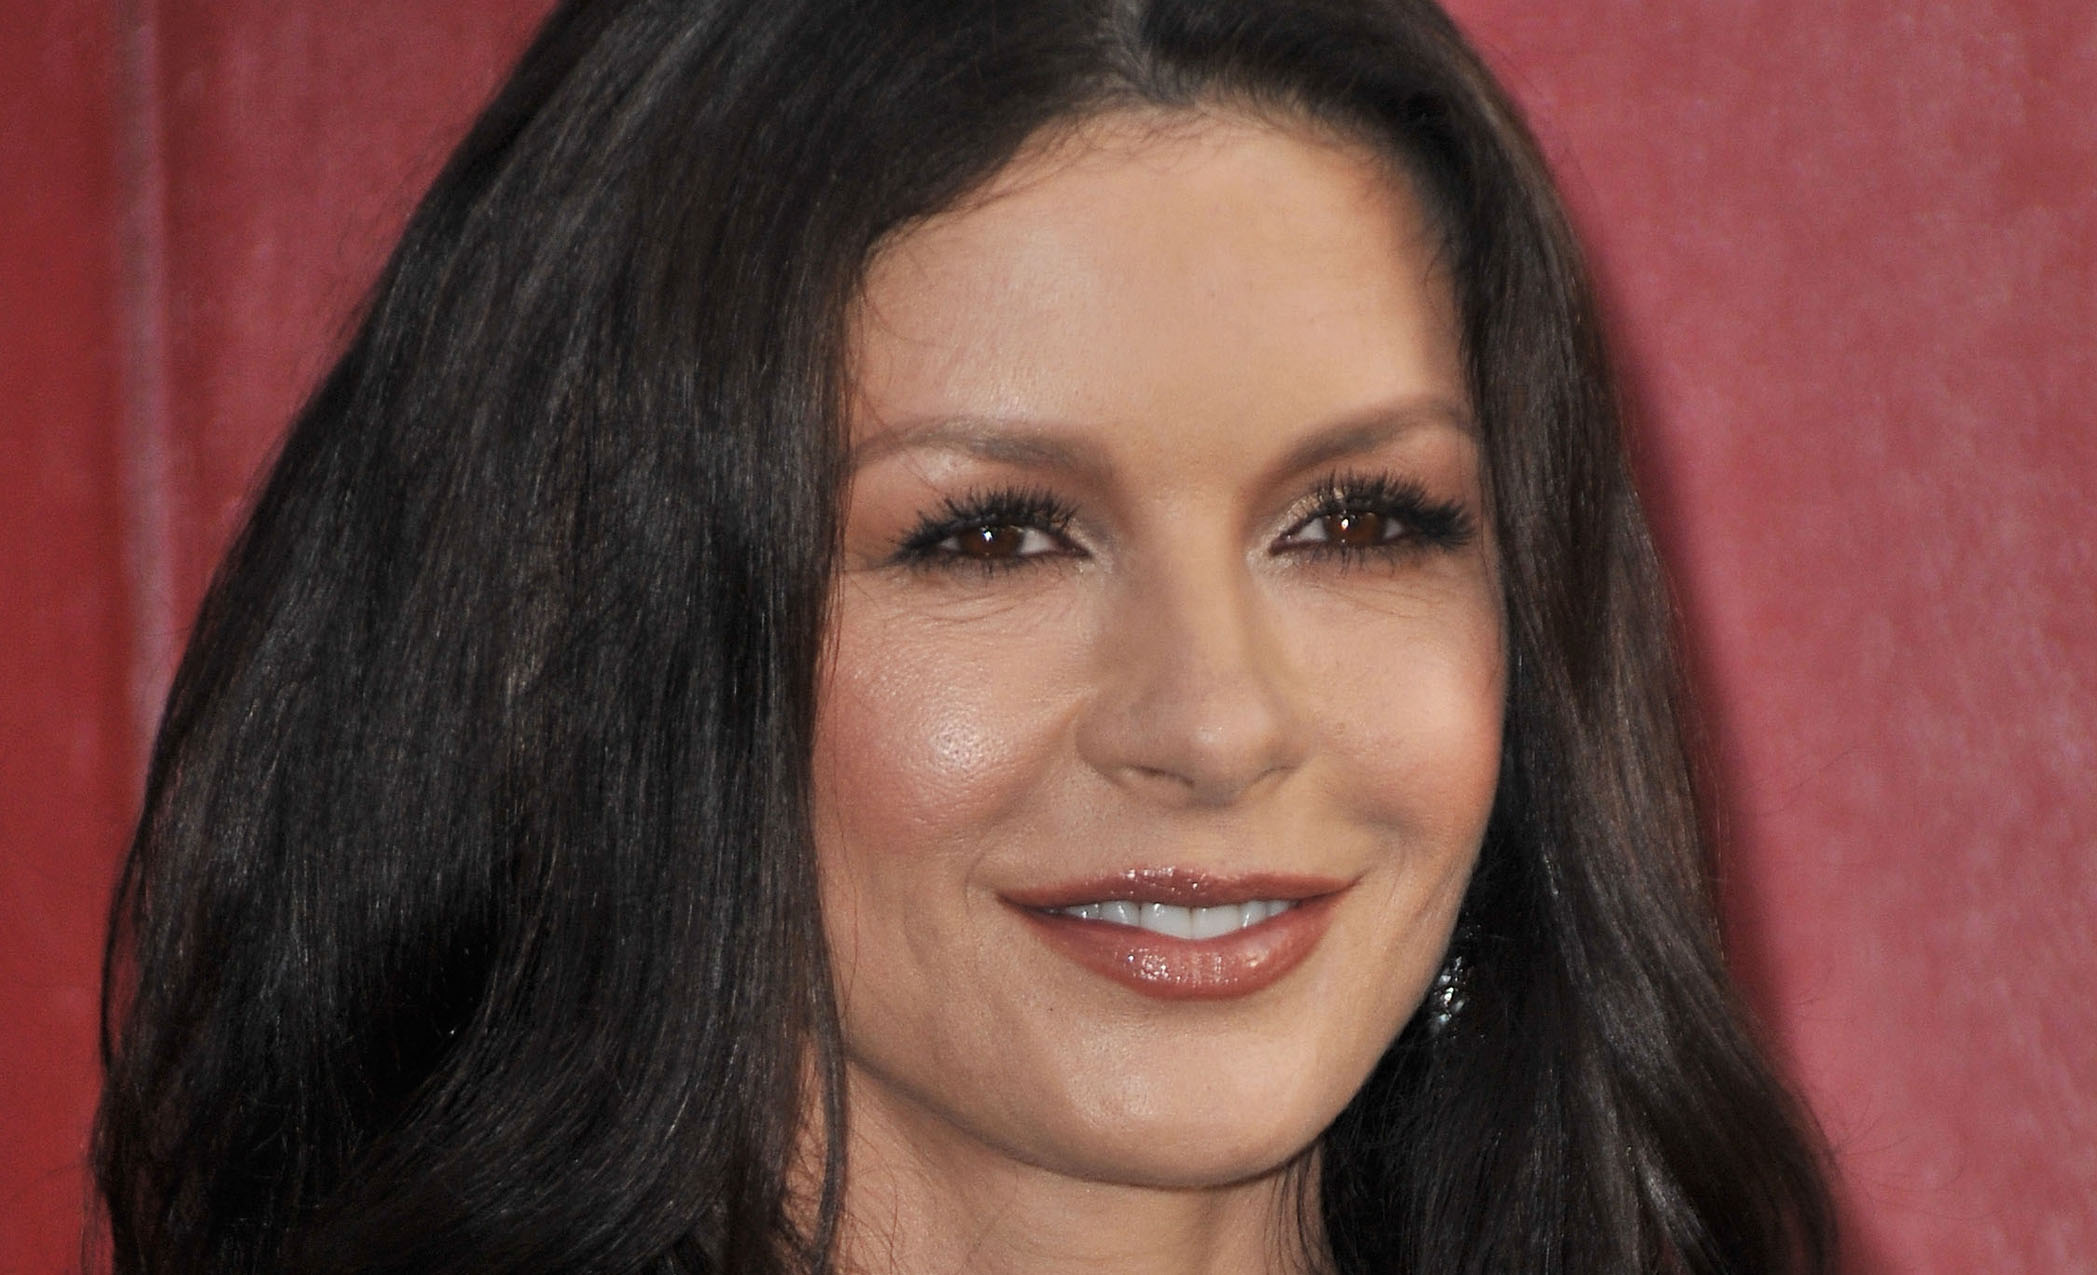 Catherine Zeta Jones Oscars 2013 Performance Zeta-jones to be part of